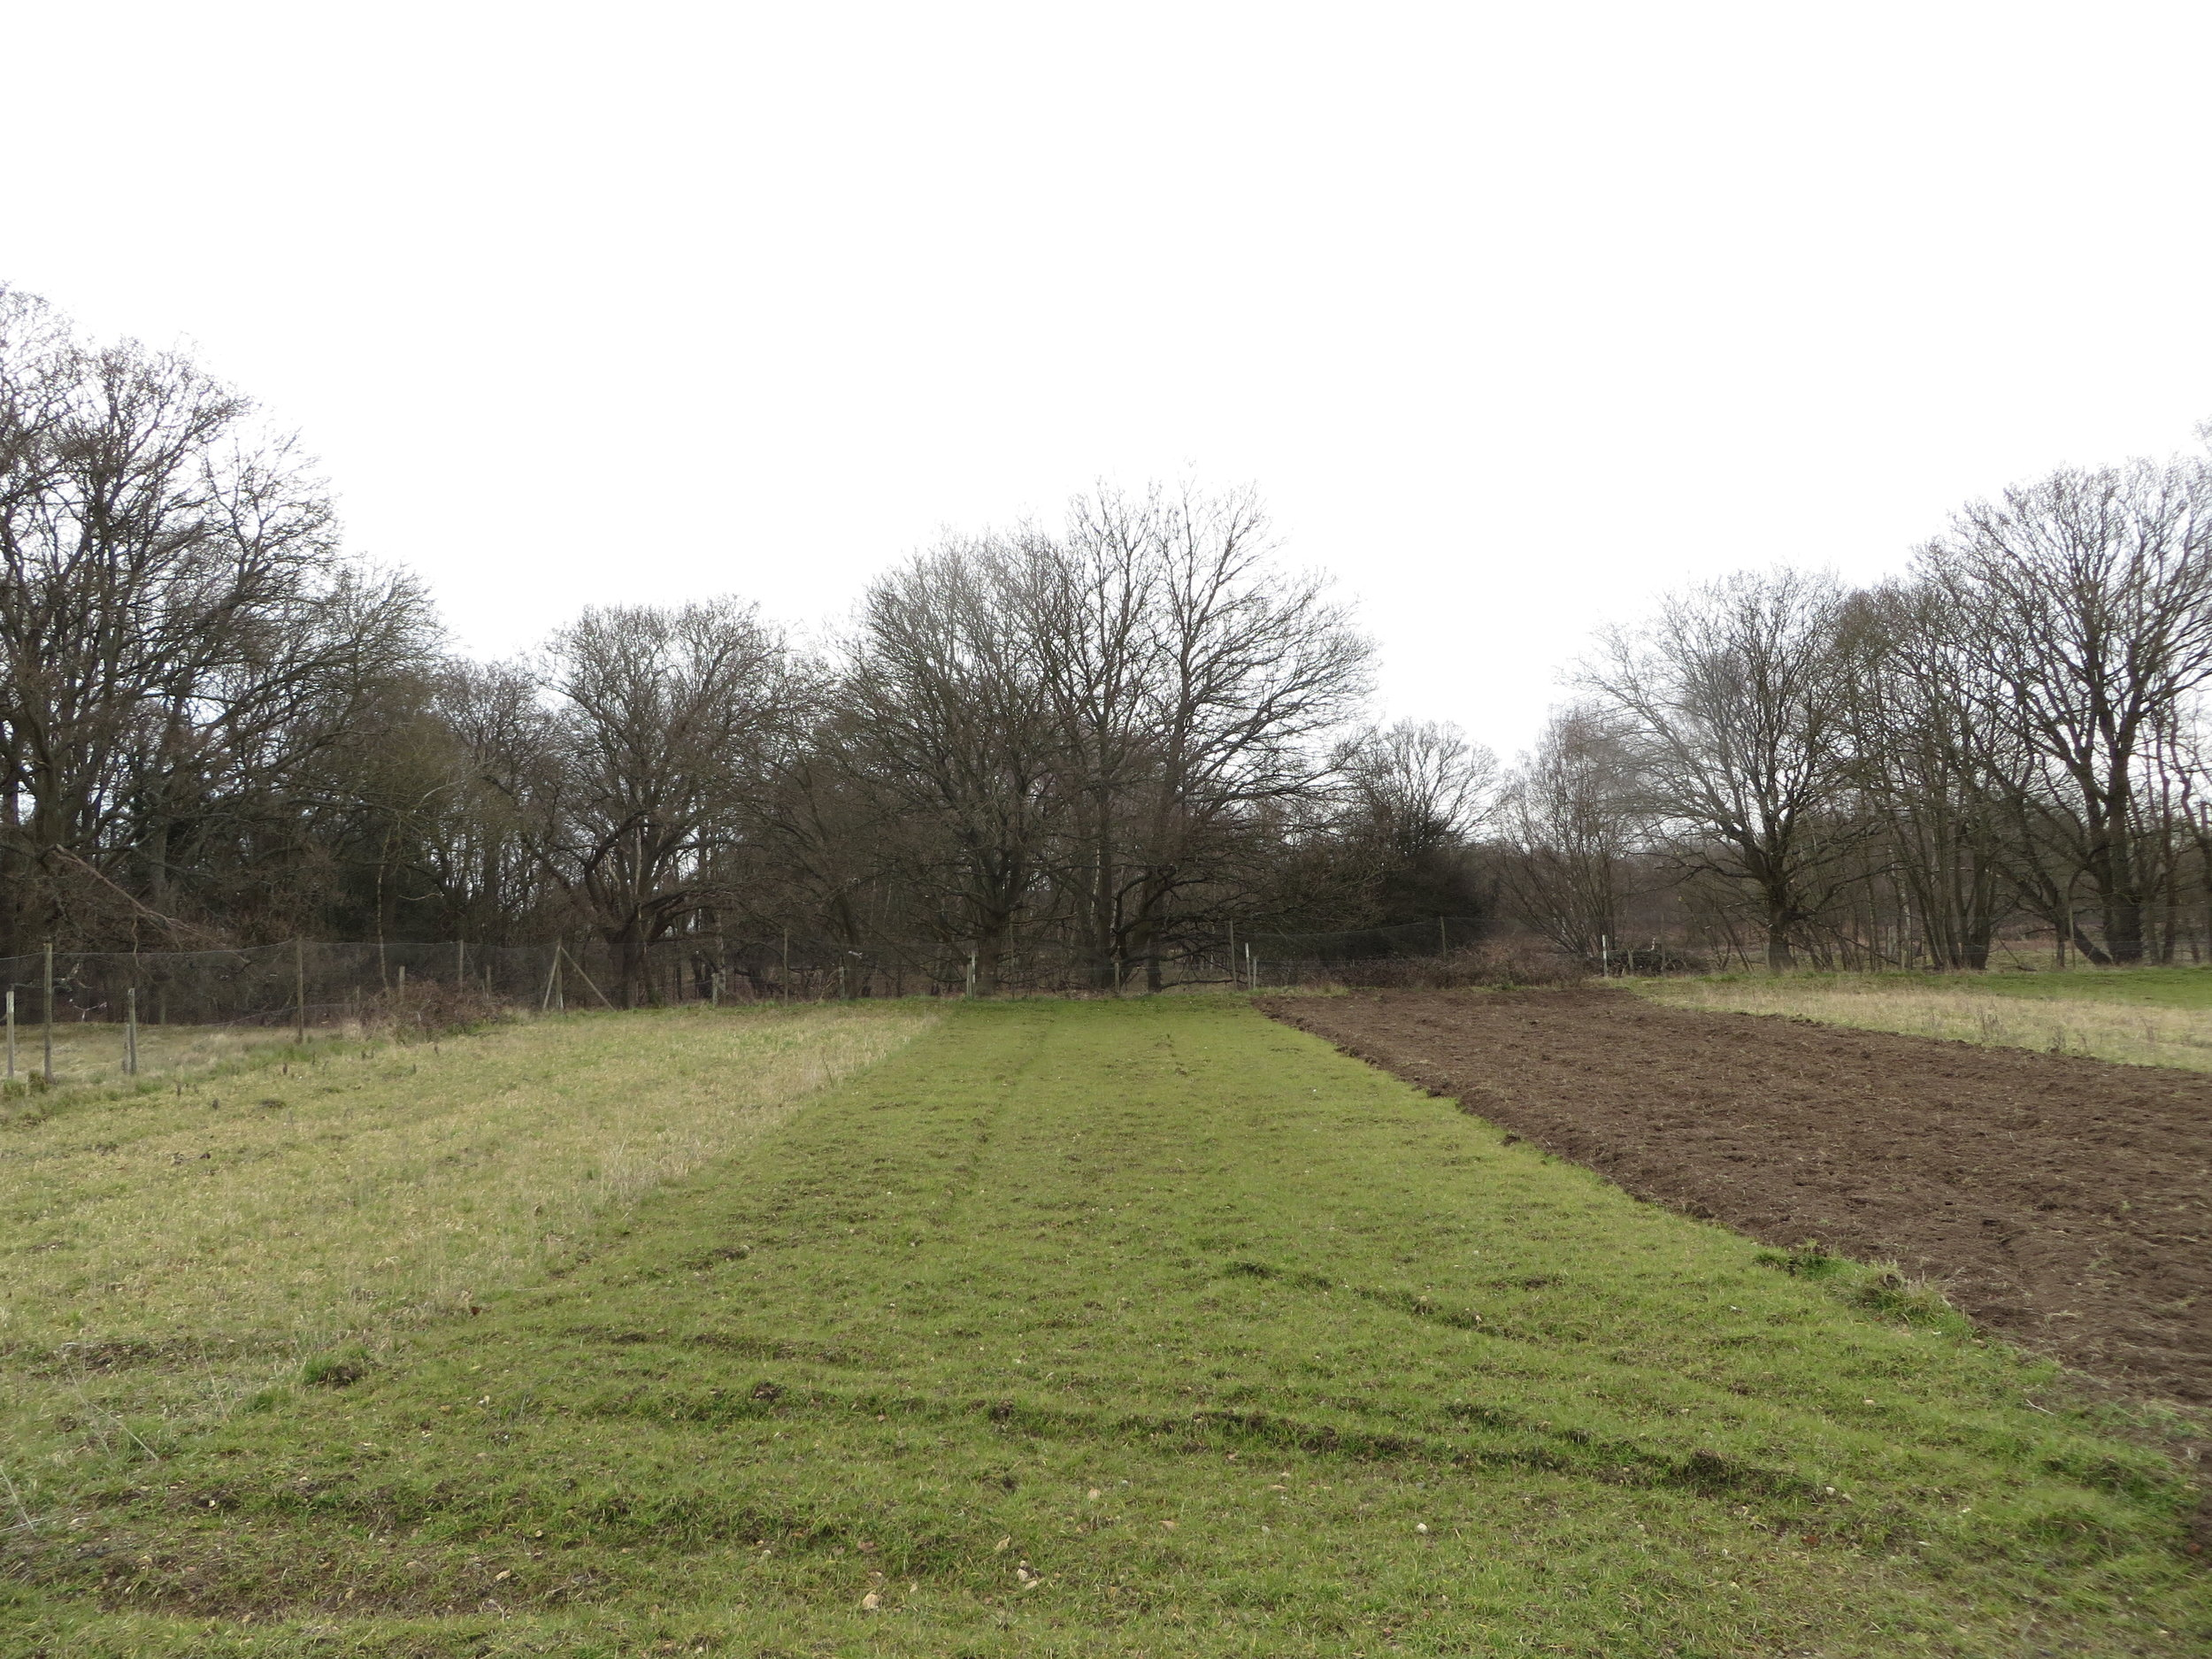 march 2016: from left to right, cultivation strips ploughed in may, October & march